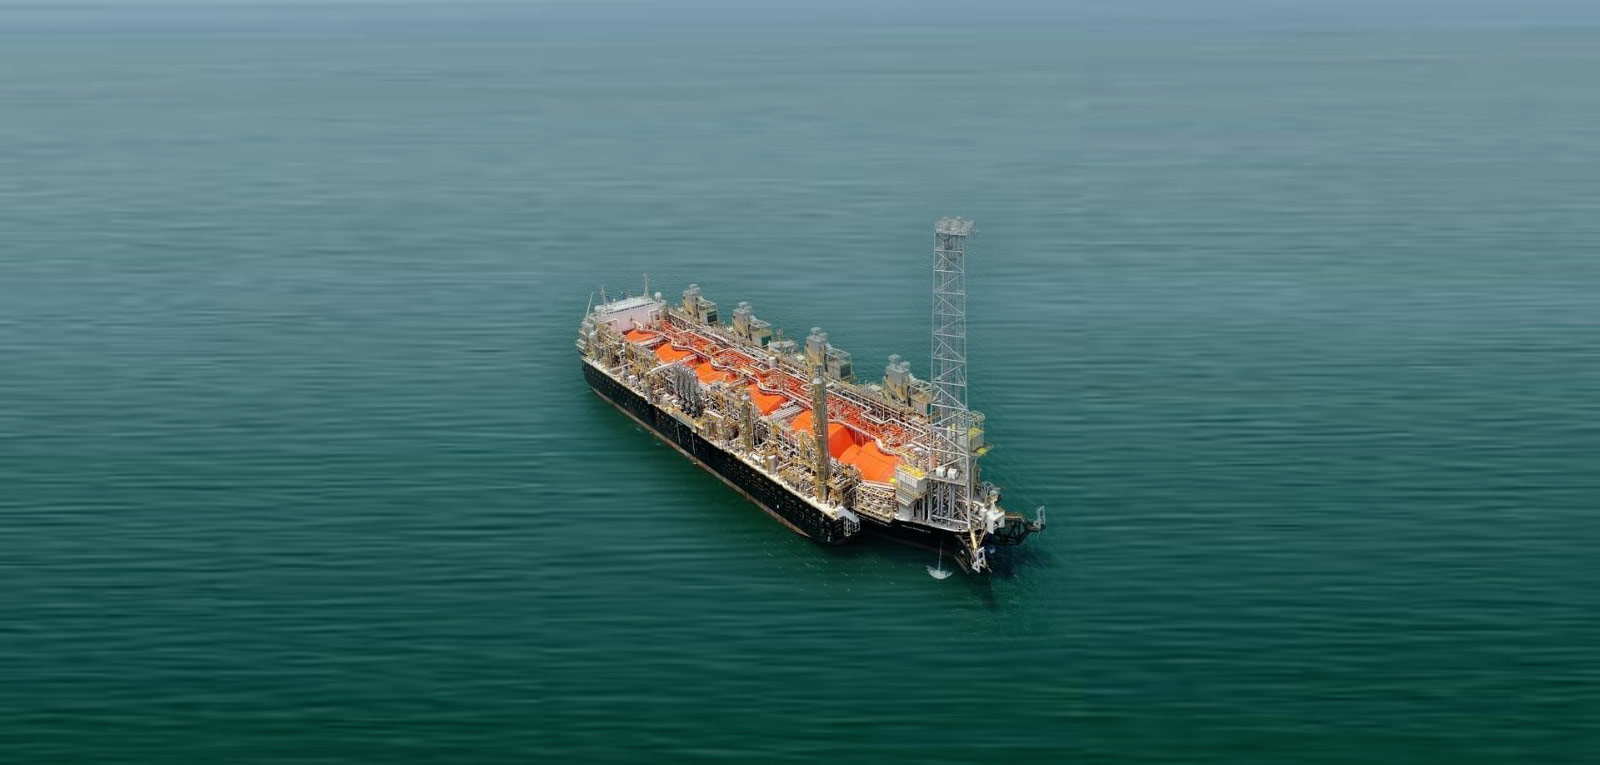 The Hilli Episeyo is installed offshore Kribi